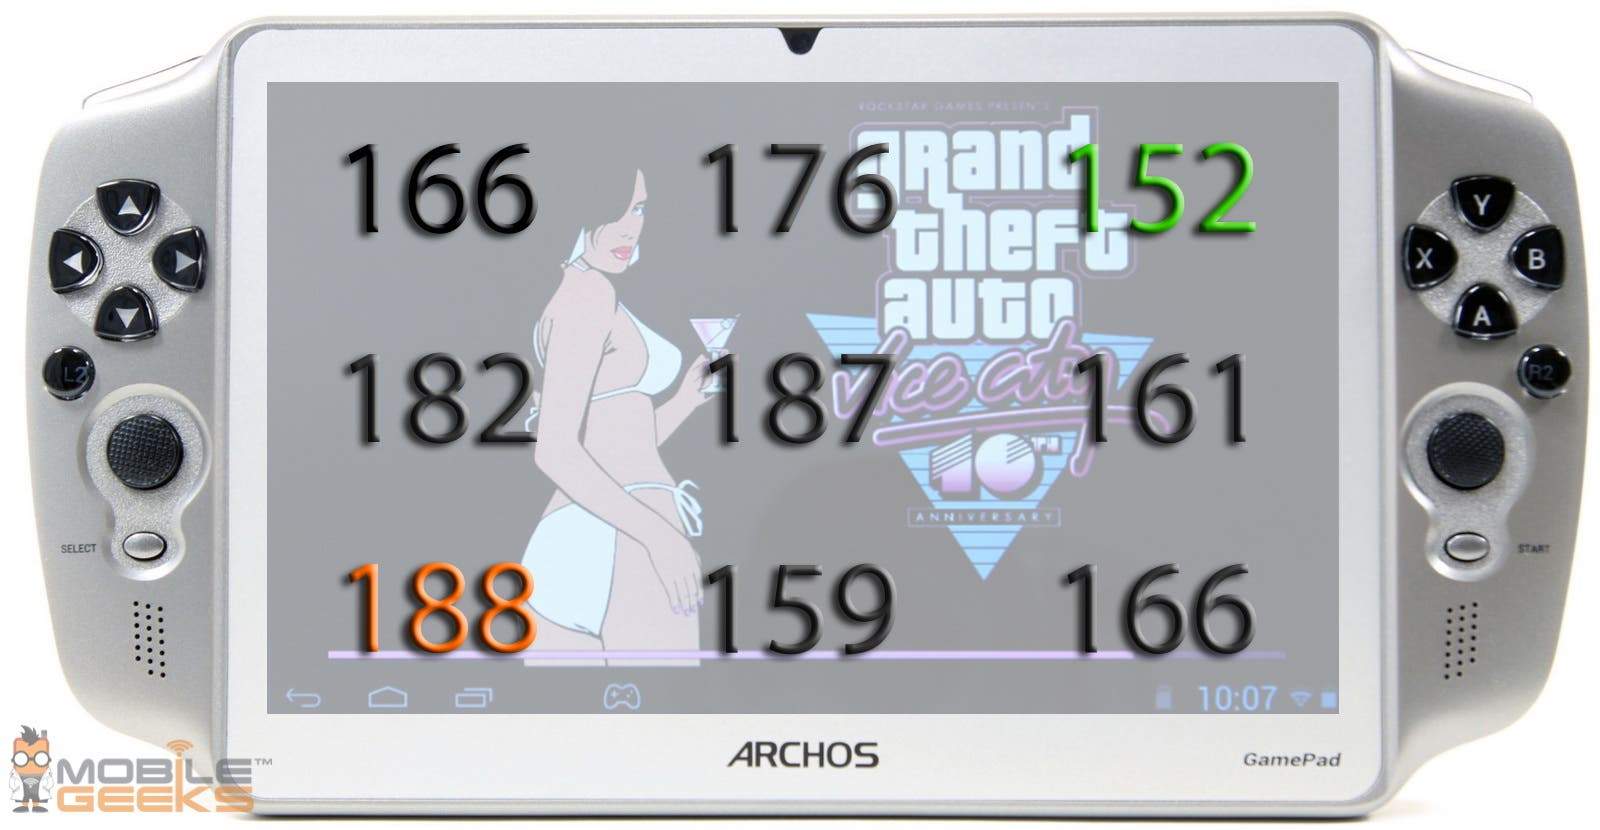 Leuchtdichteverteilung Archos GamePad Tablet in cd/m²